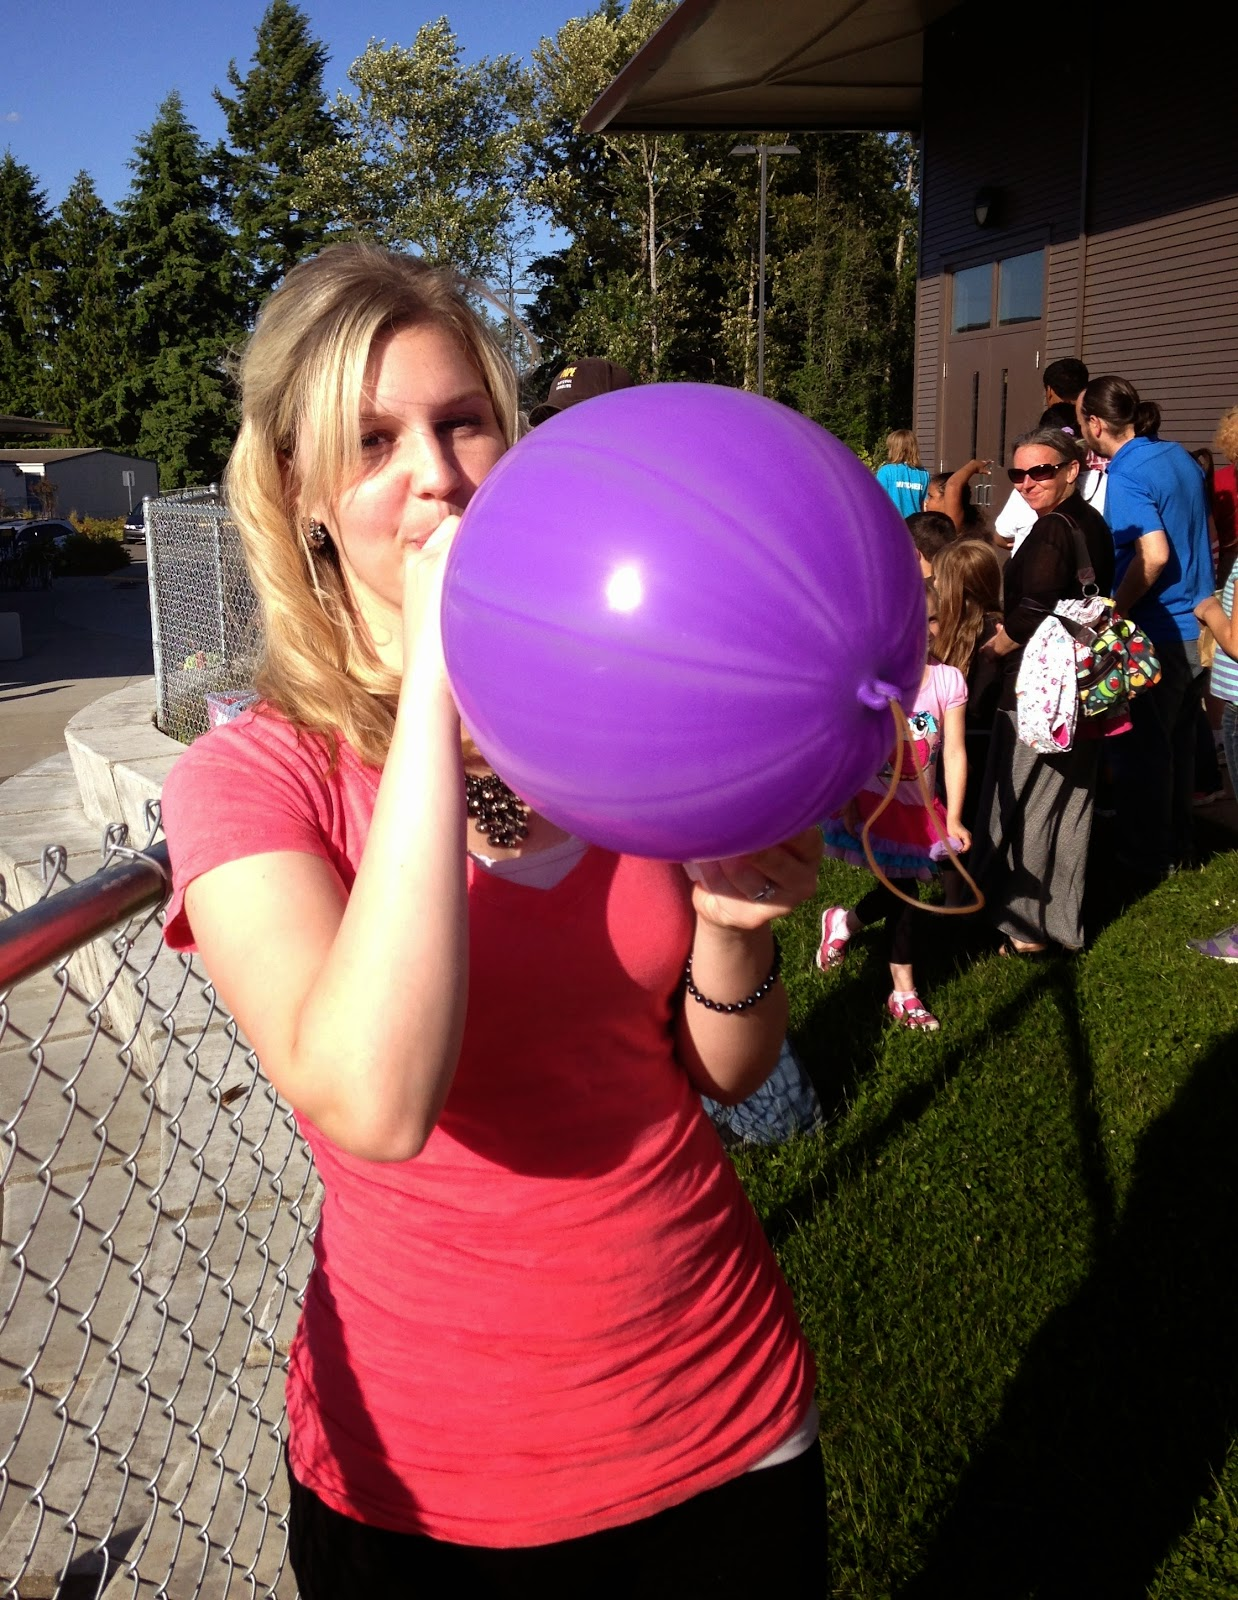 Looner from the south payton pops balloons 1